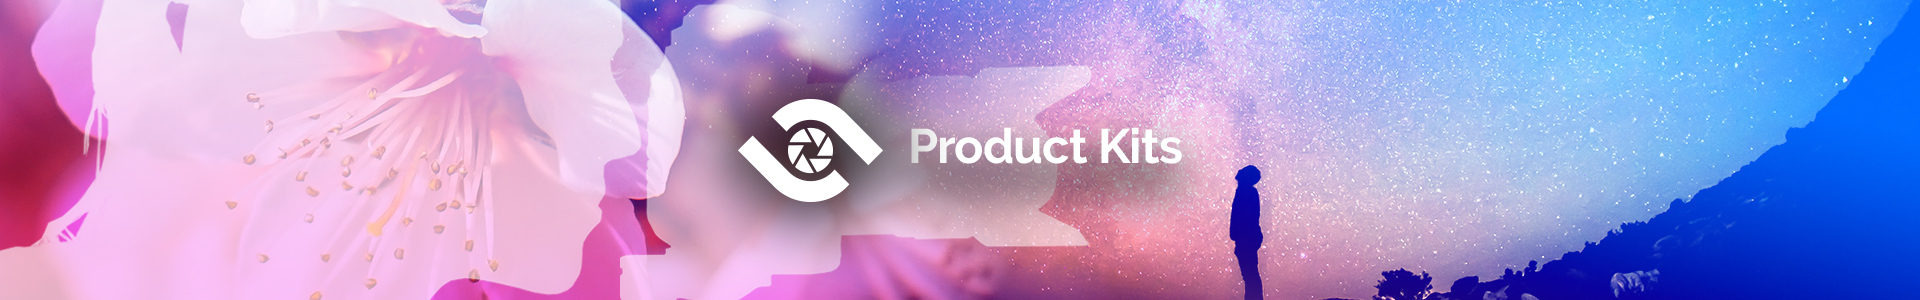 Product kits banner